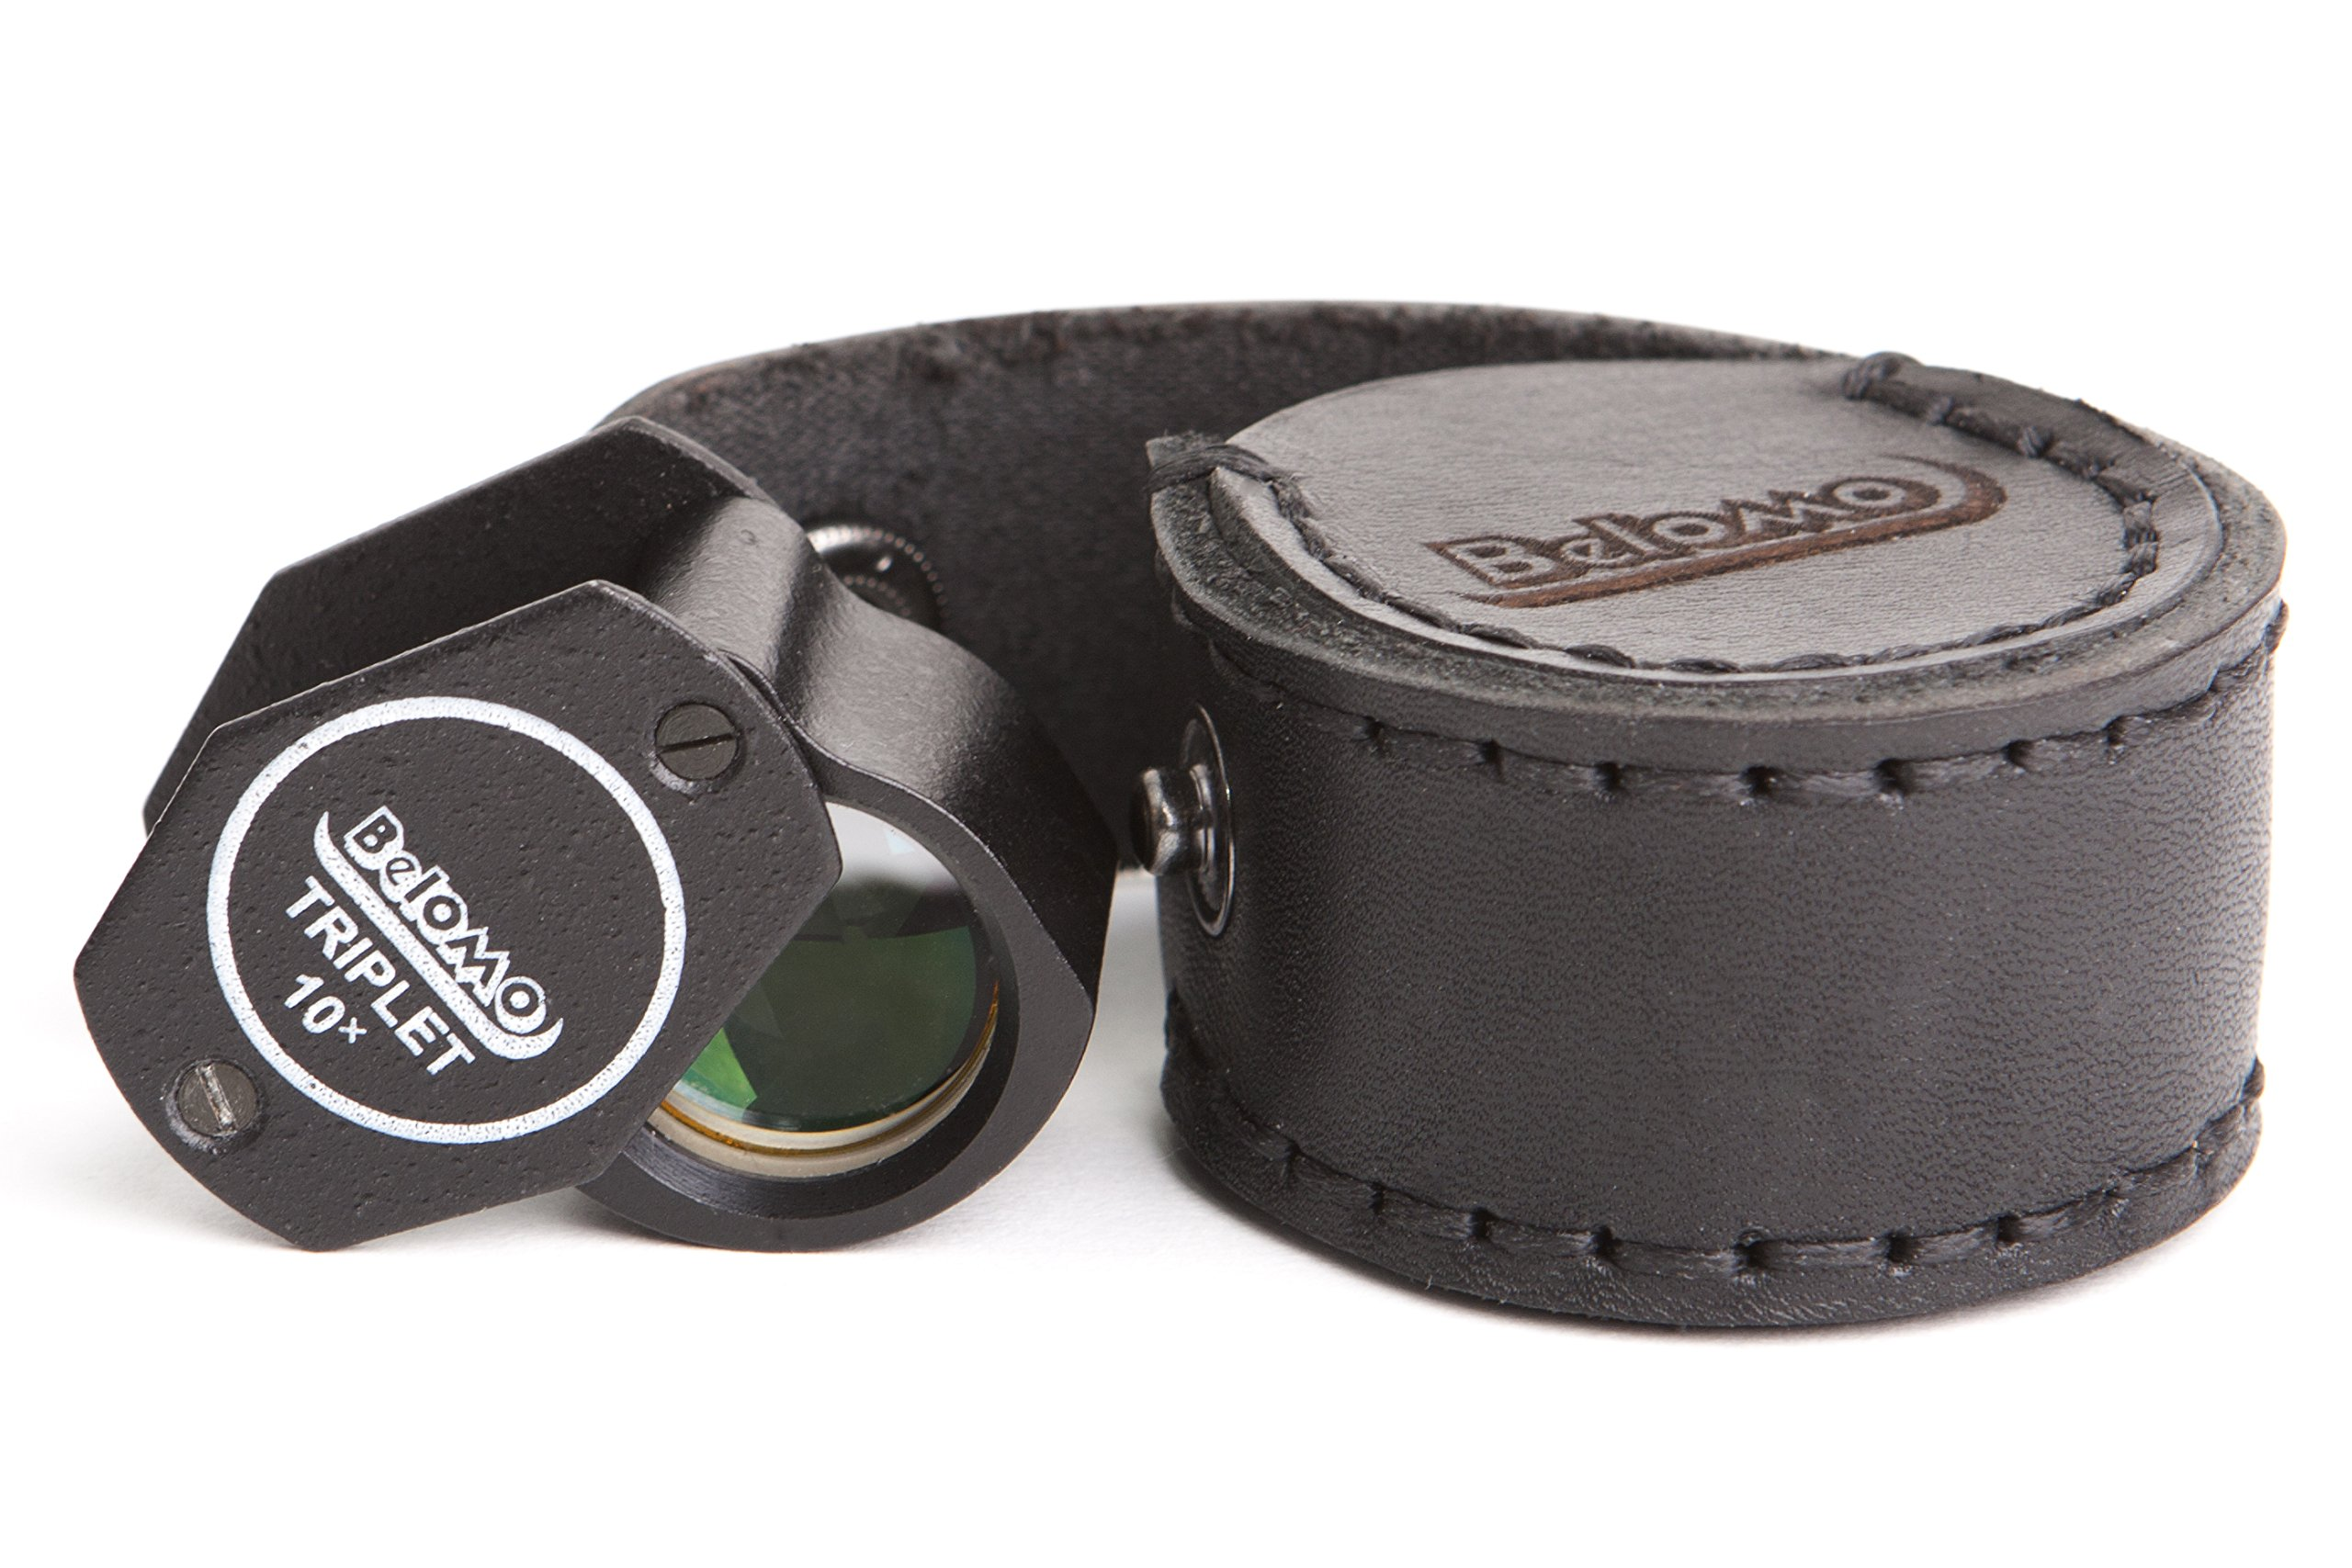 BelOMO 10x Triplet Loupe Magnifier with LEATHER CASE. 21mm (.85'') Folding Magnifier